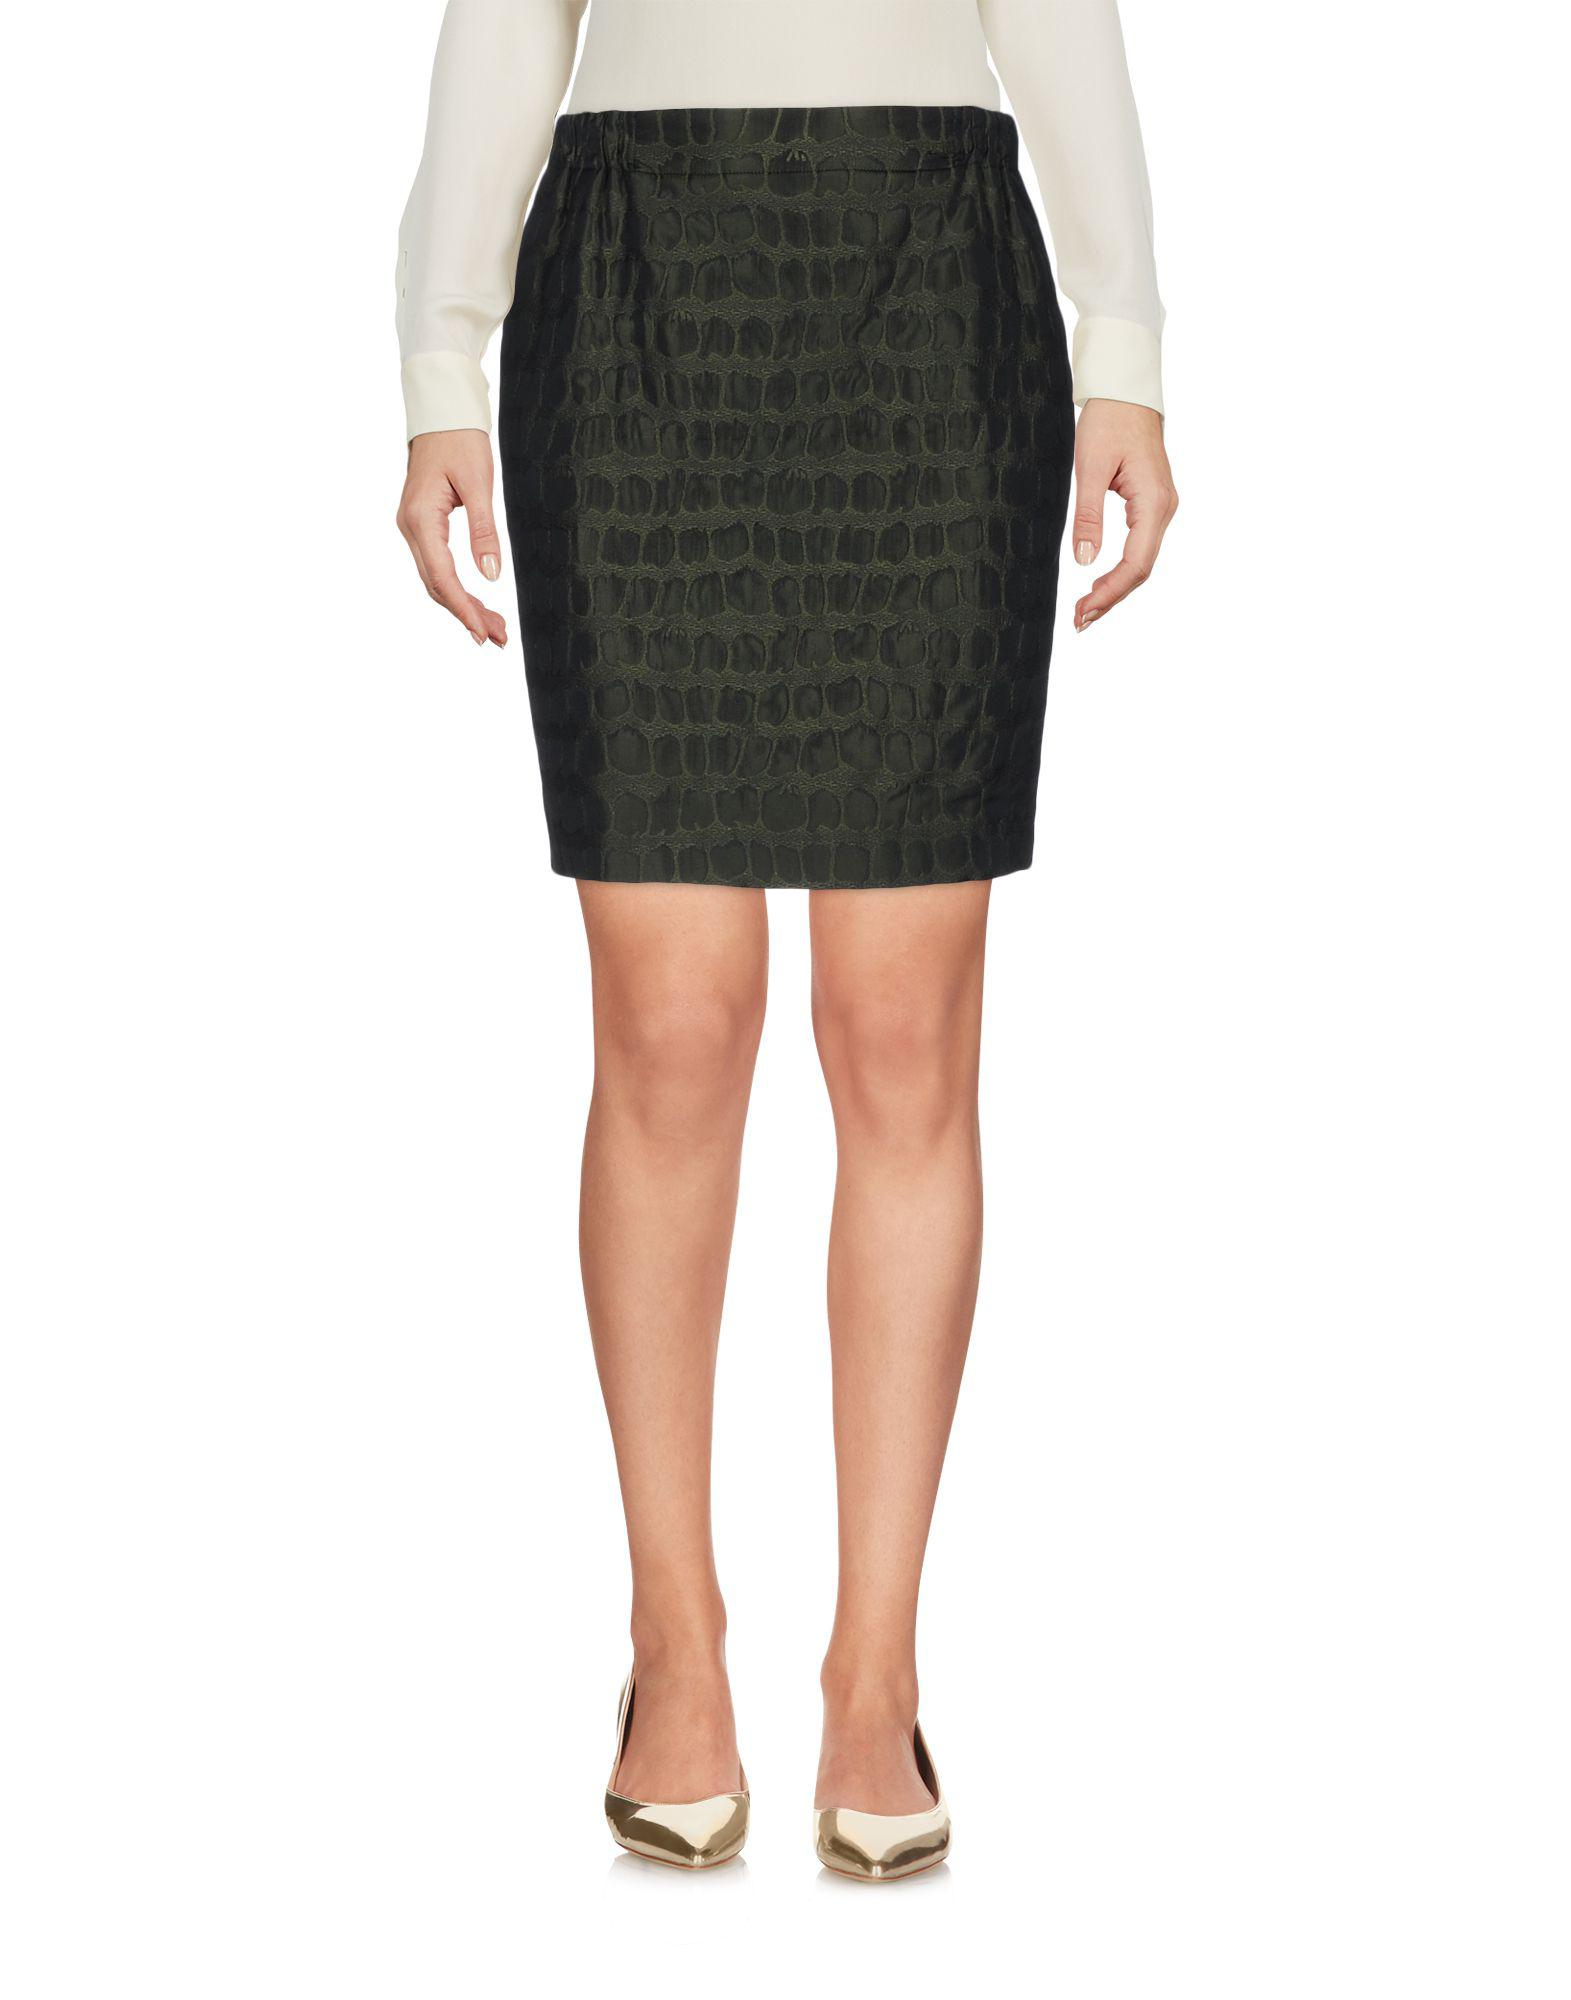 Buy Cheap Exclusive Golden Goose Deluxe Brand mini skirt Visit Online Sale The Cheapest Sale Online Shop gdVxboVGG